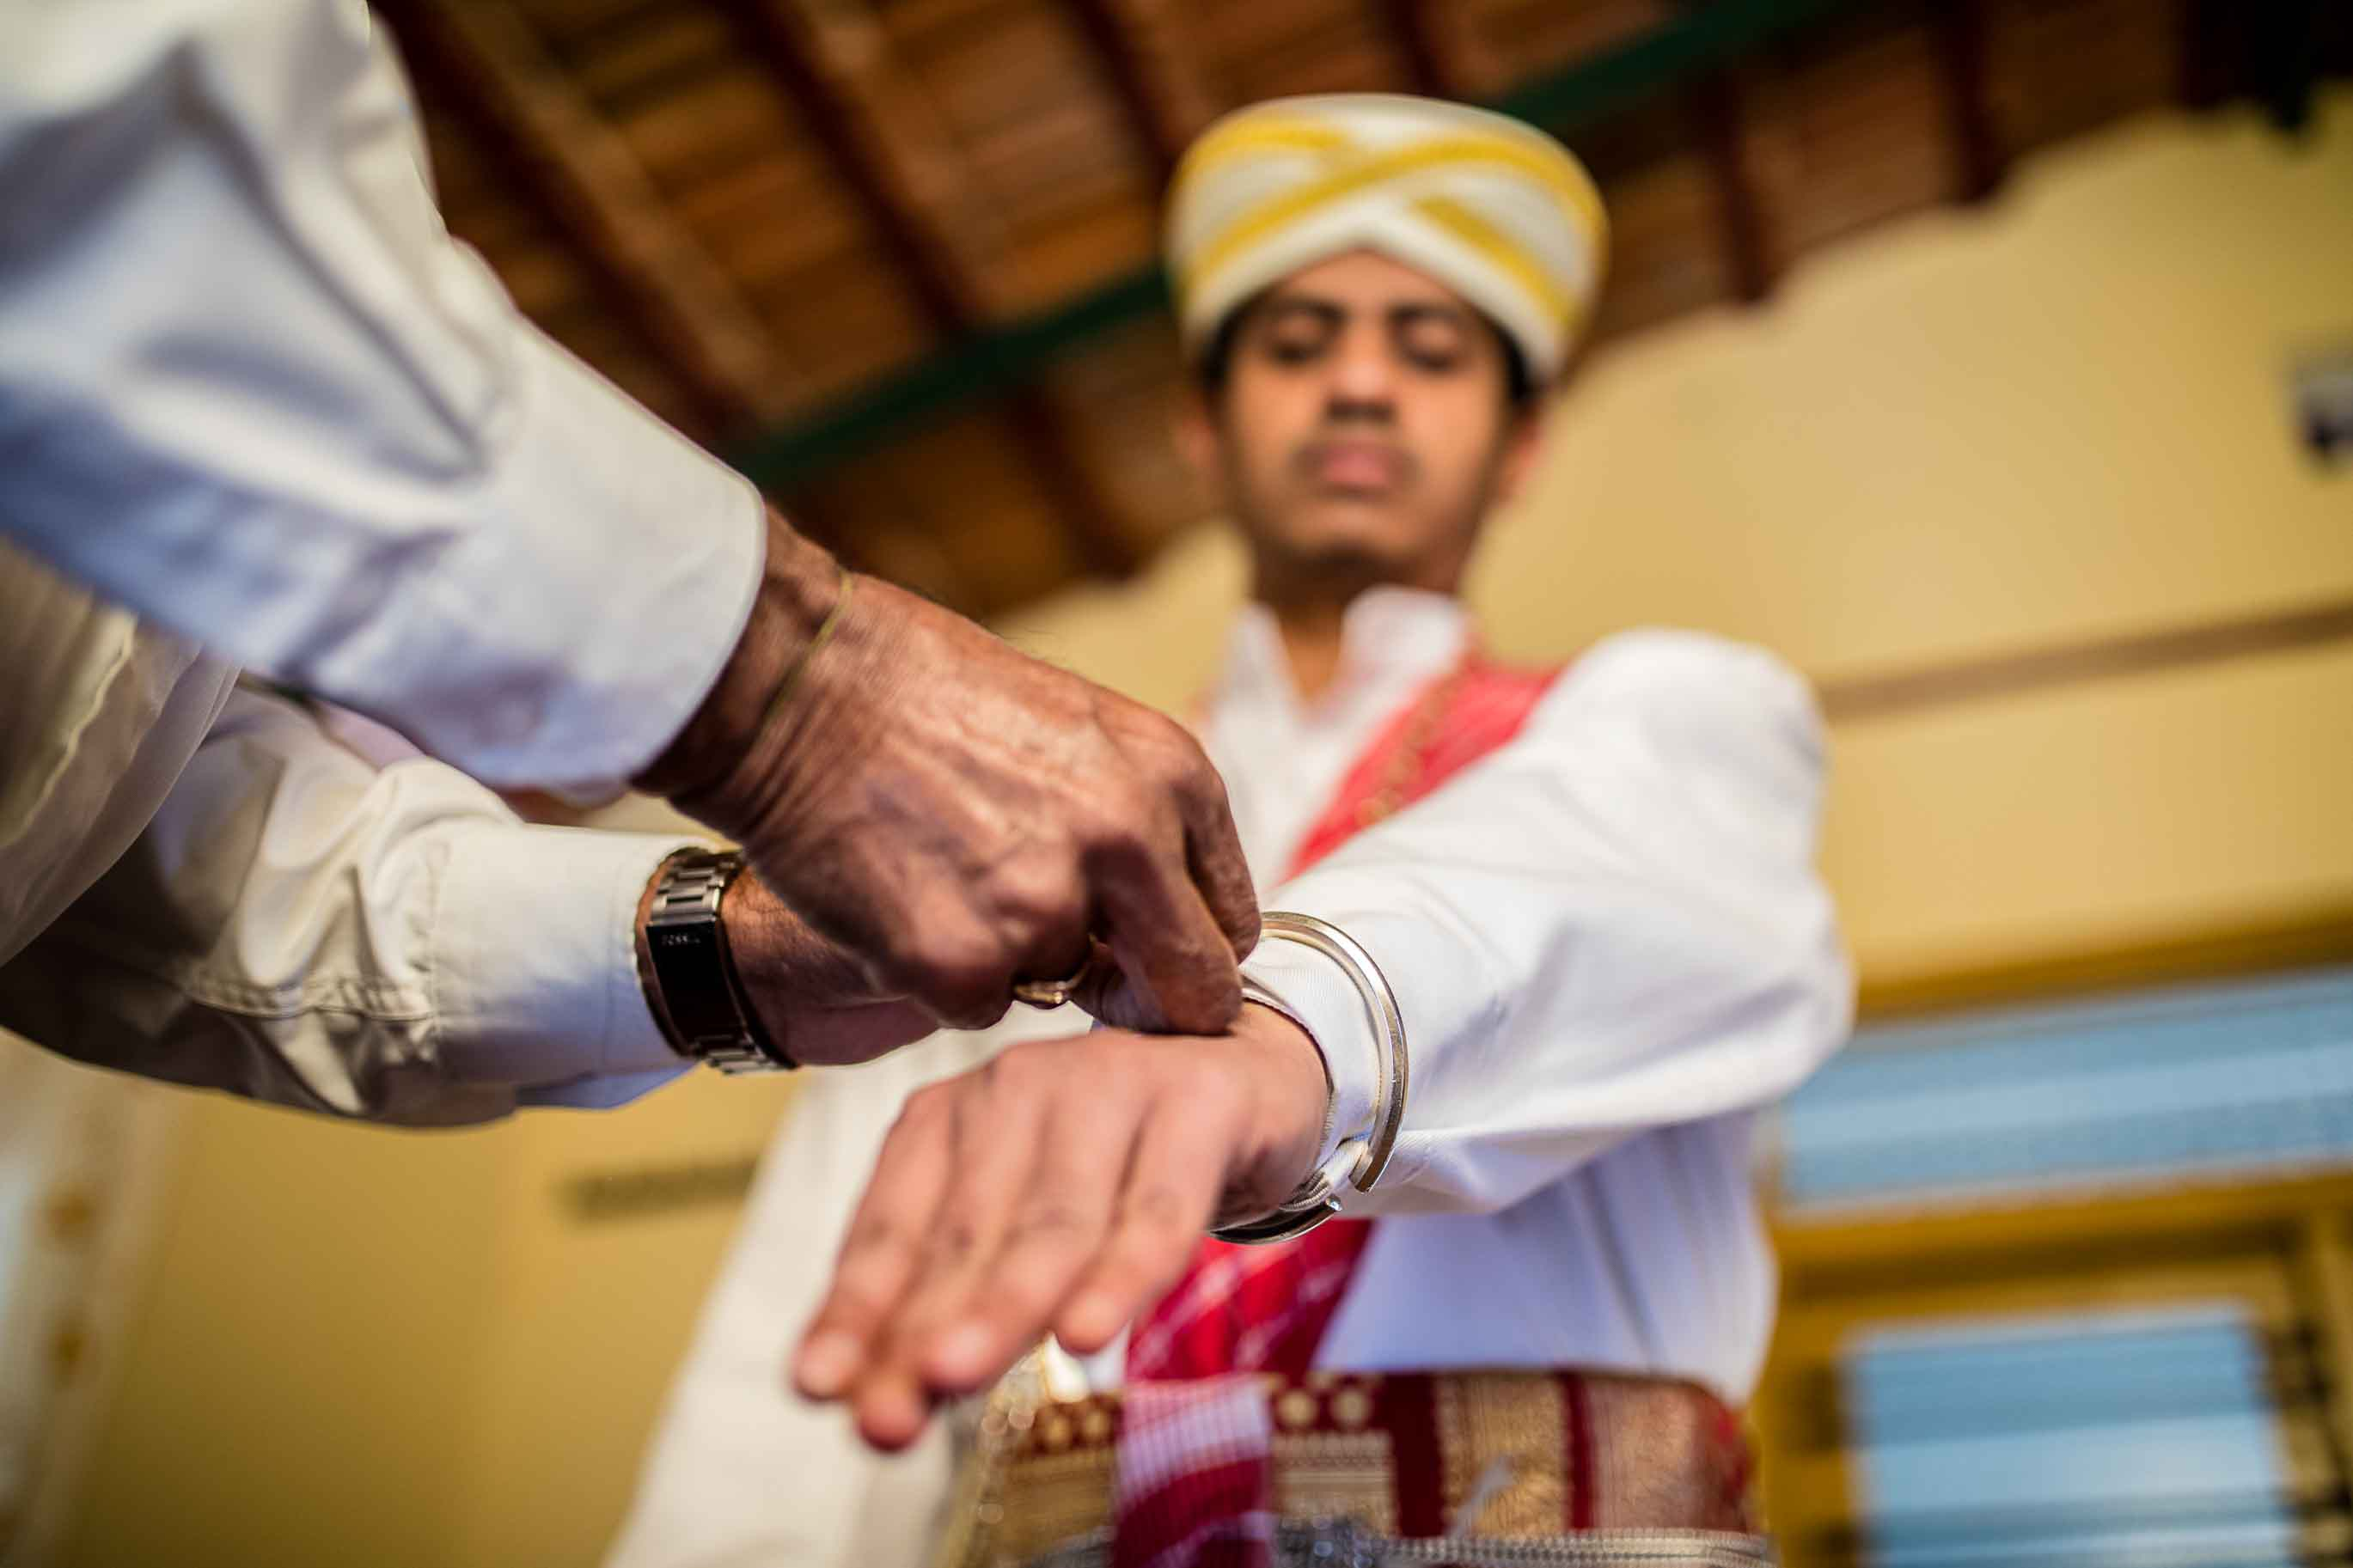 Pixel-Chronicles-Jeevan-Prathika-Coorg-Wedding-Ritual-Candid-Wedding-Documentary-Photography-5